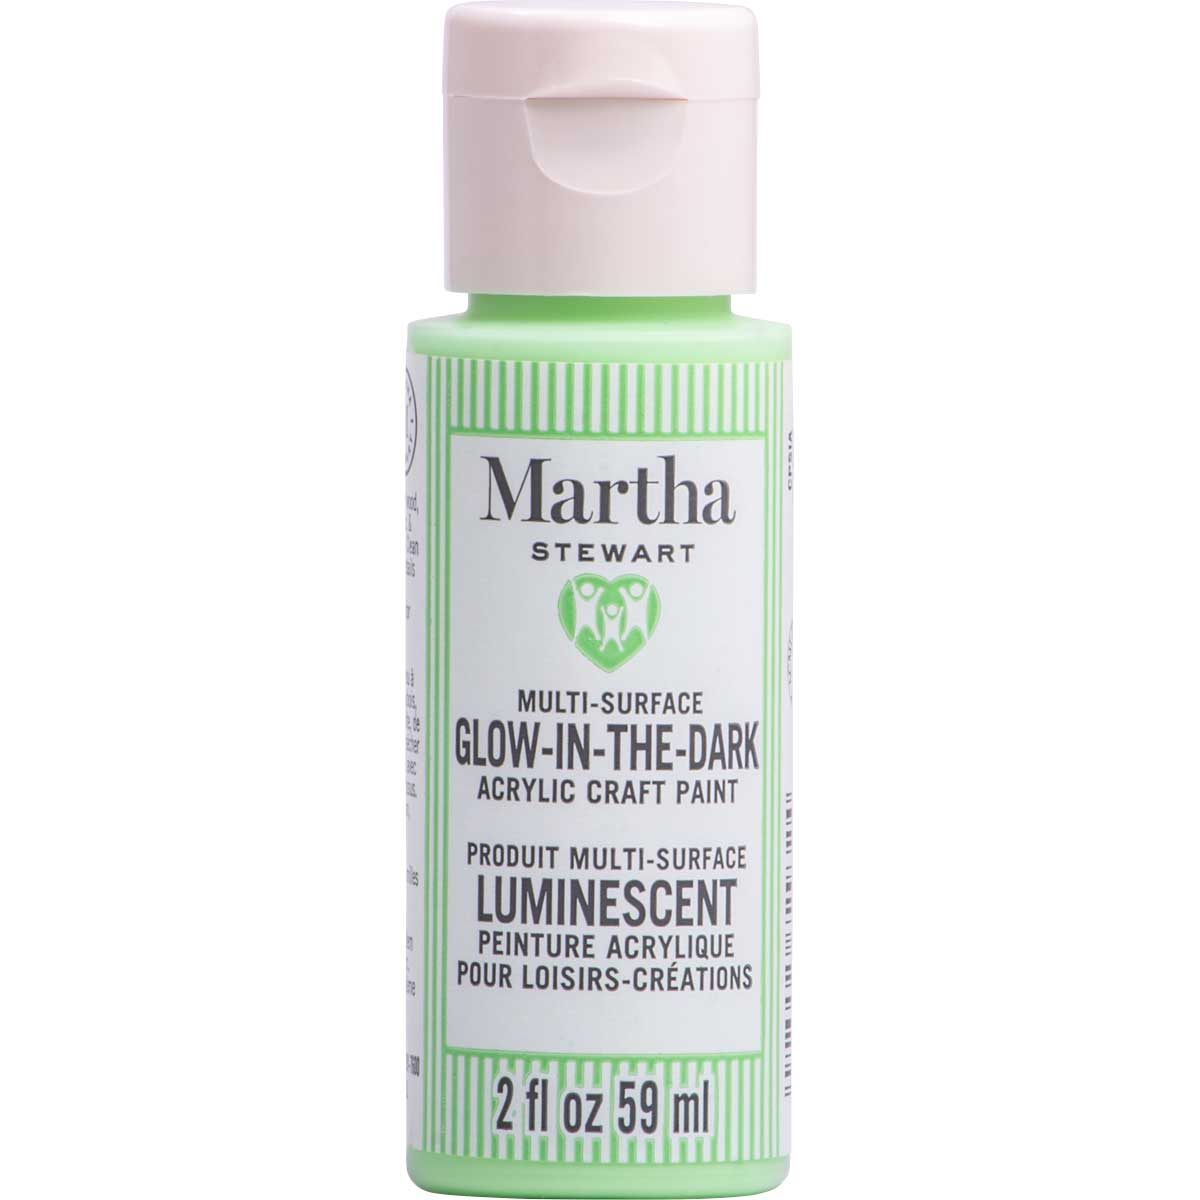 Martha Stewart ® Multi-Surface Glow-in-the-Dark Acrylic Craft Paint CPSIA - Green Dragon, 2 oz. - 72